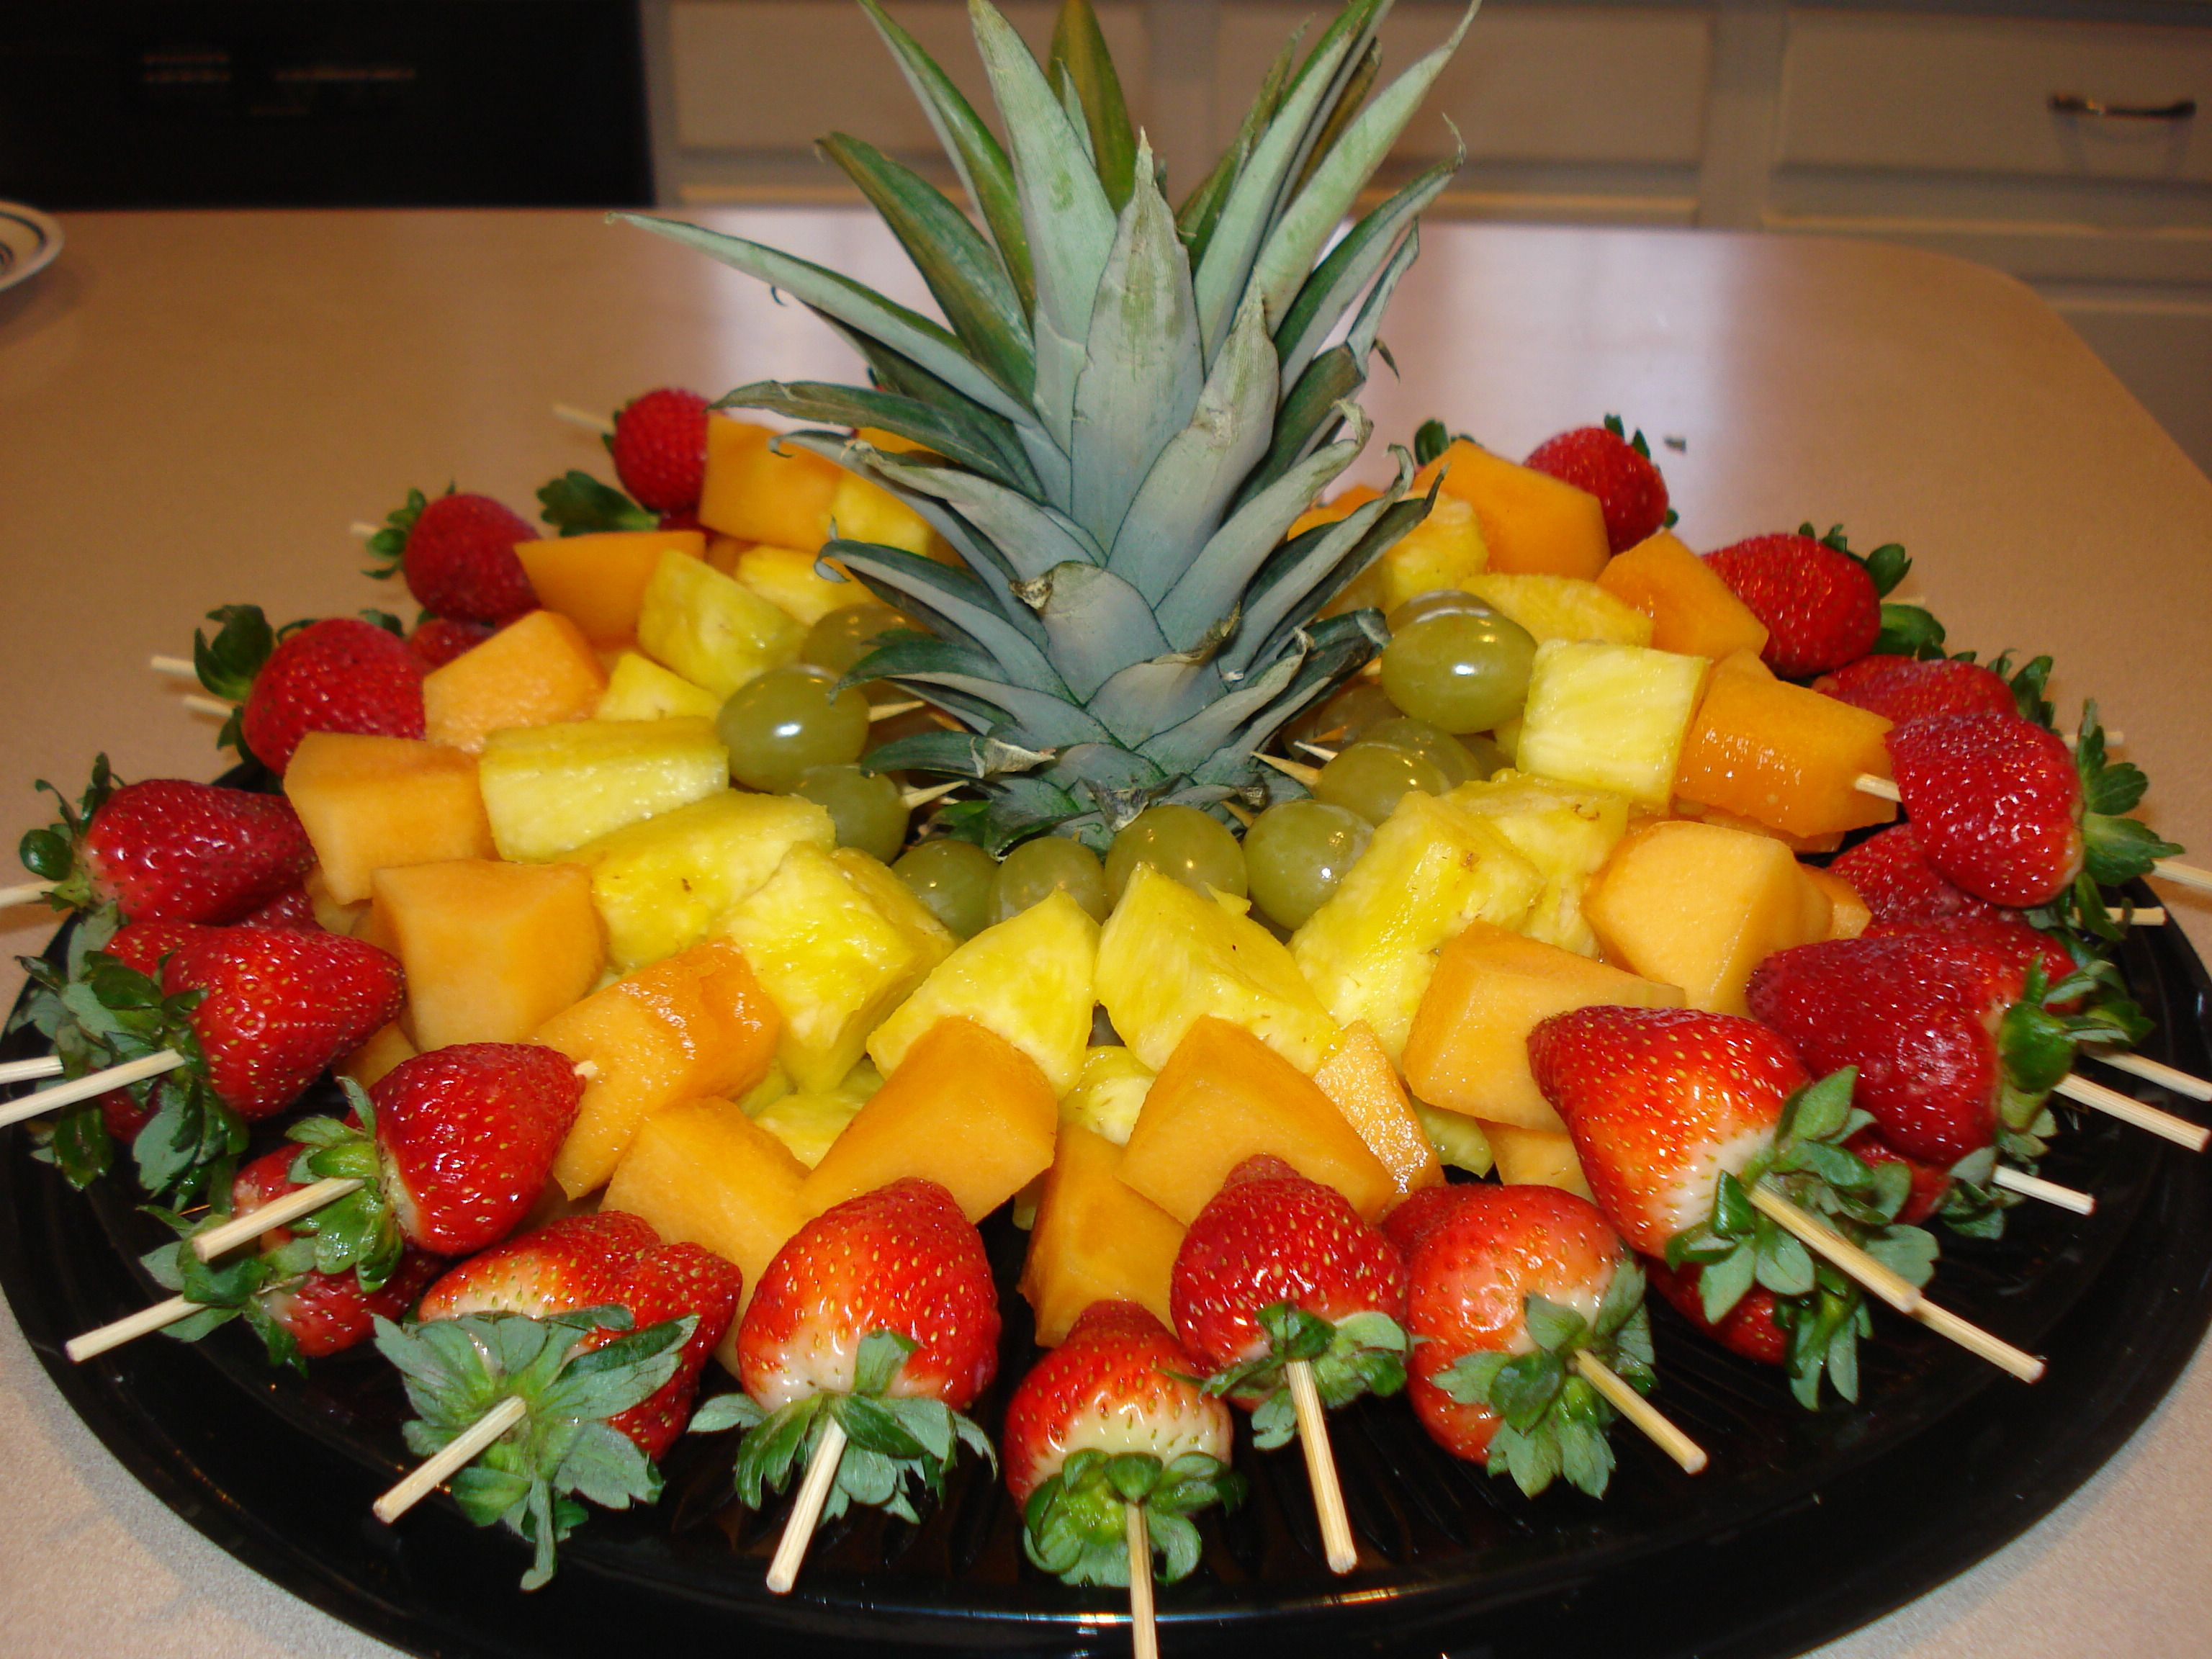 Fruit skewers for a party cut top off of pineapple to for Ananas dekoration